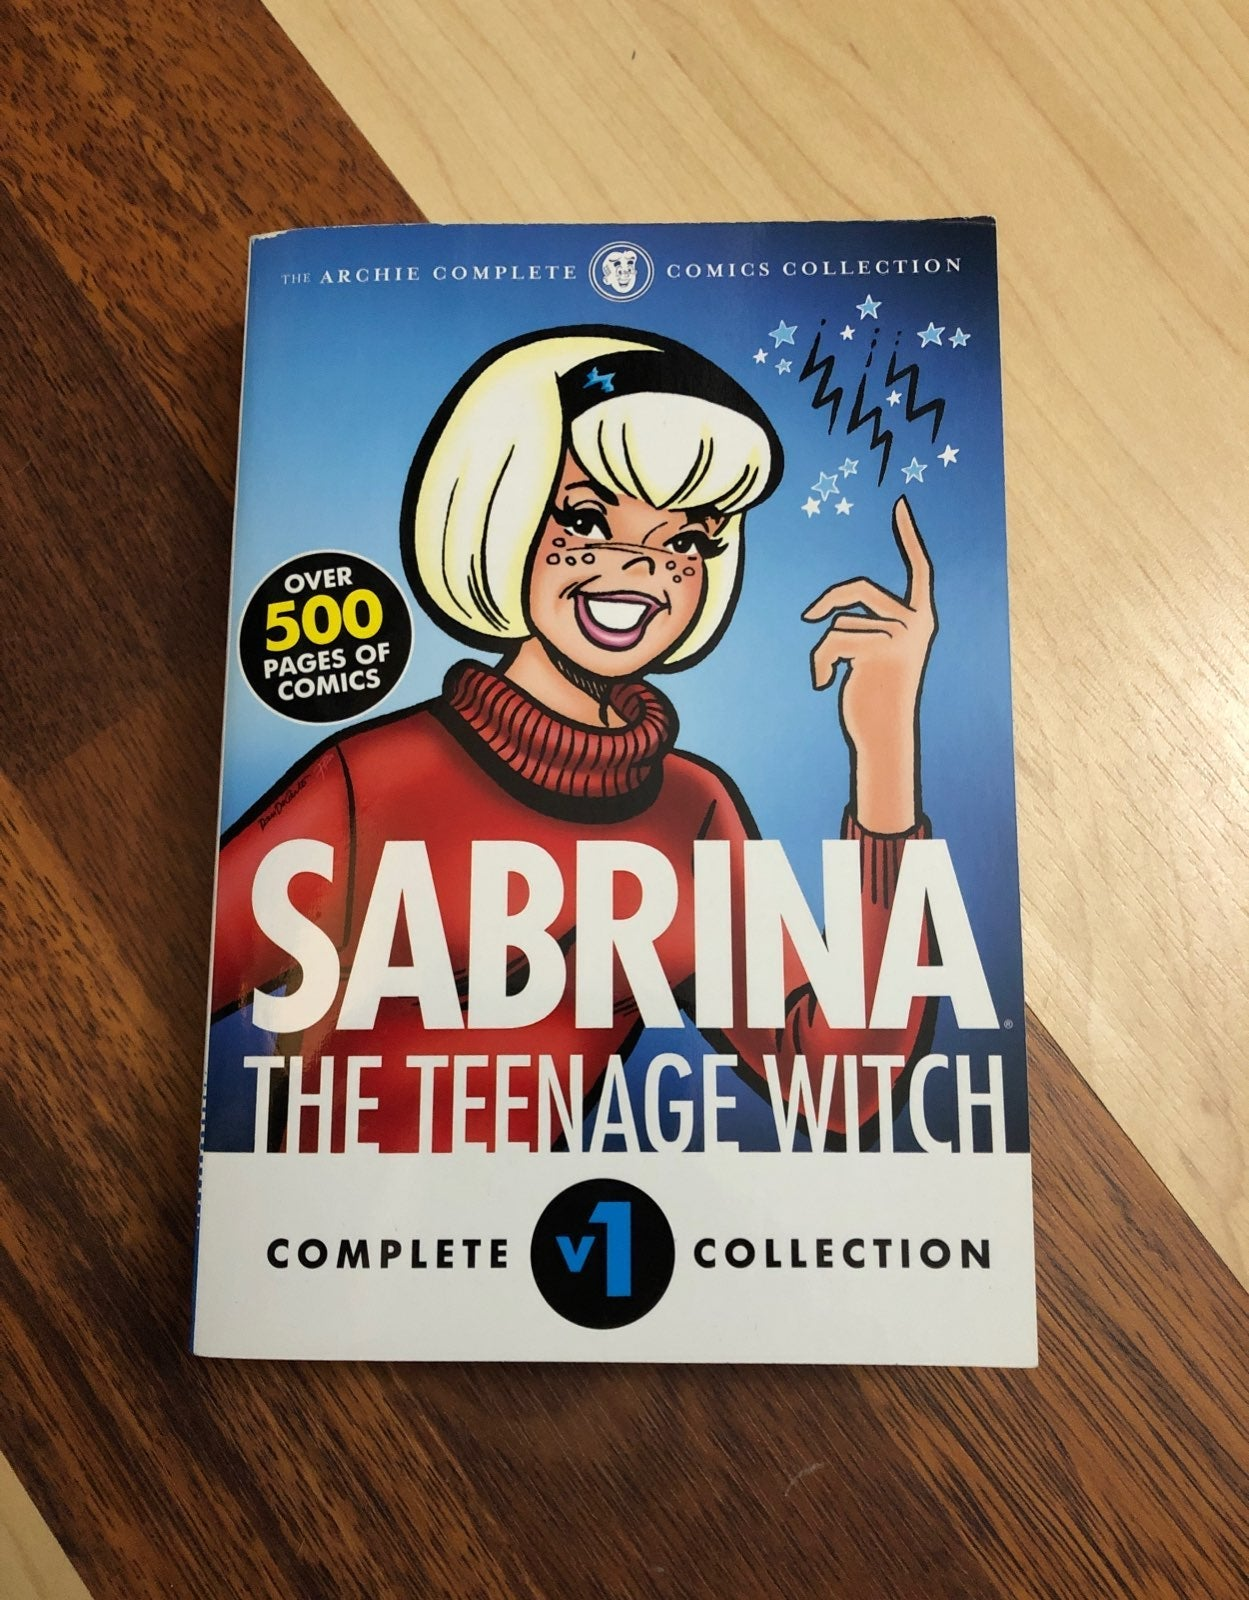 Sabrina the Teenage Witch Complete Colle